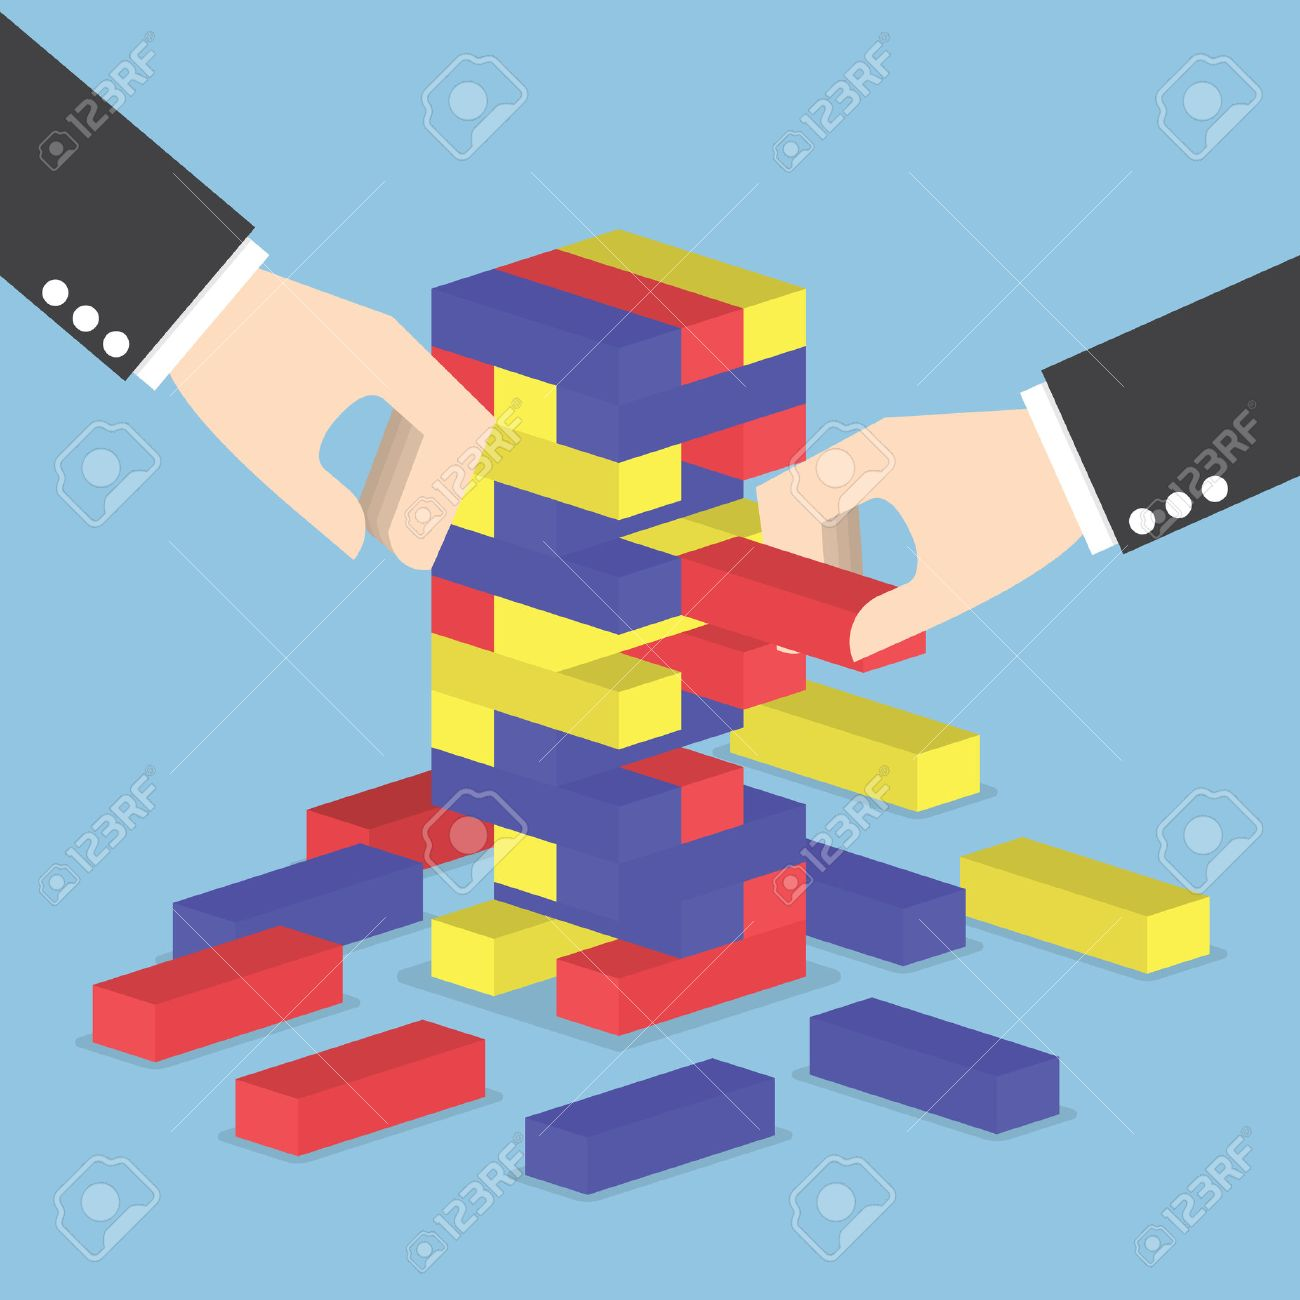 Businessman Hands Play Wood Block Tower Game Teamwork Strategy And Diagram Games Vision Concept Stockfoto